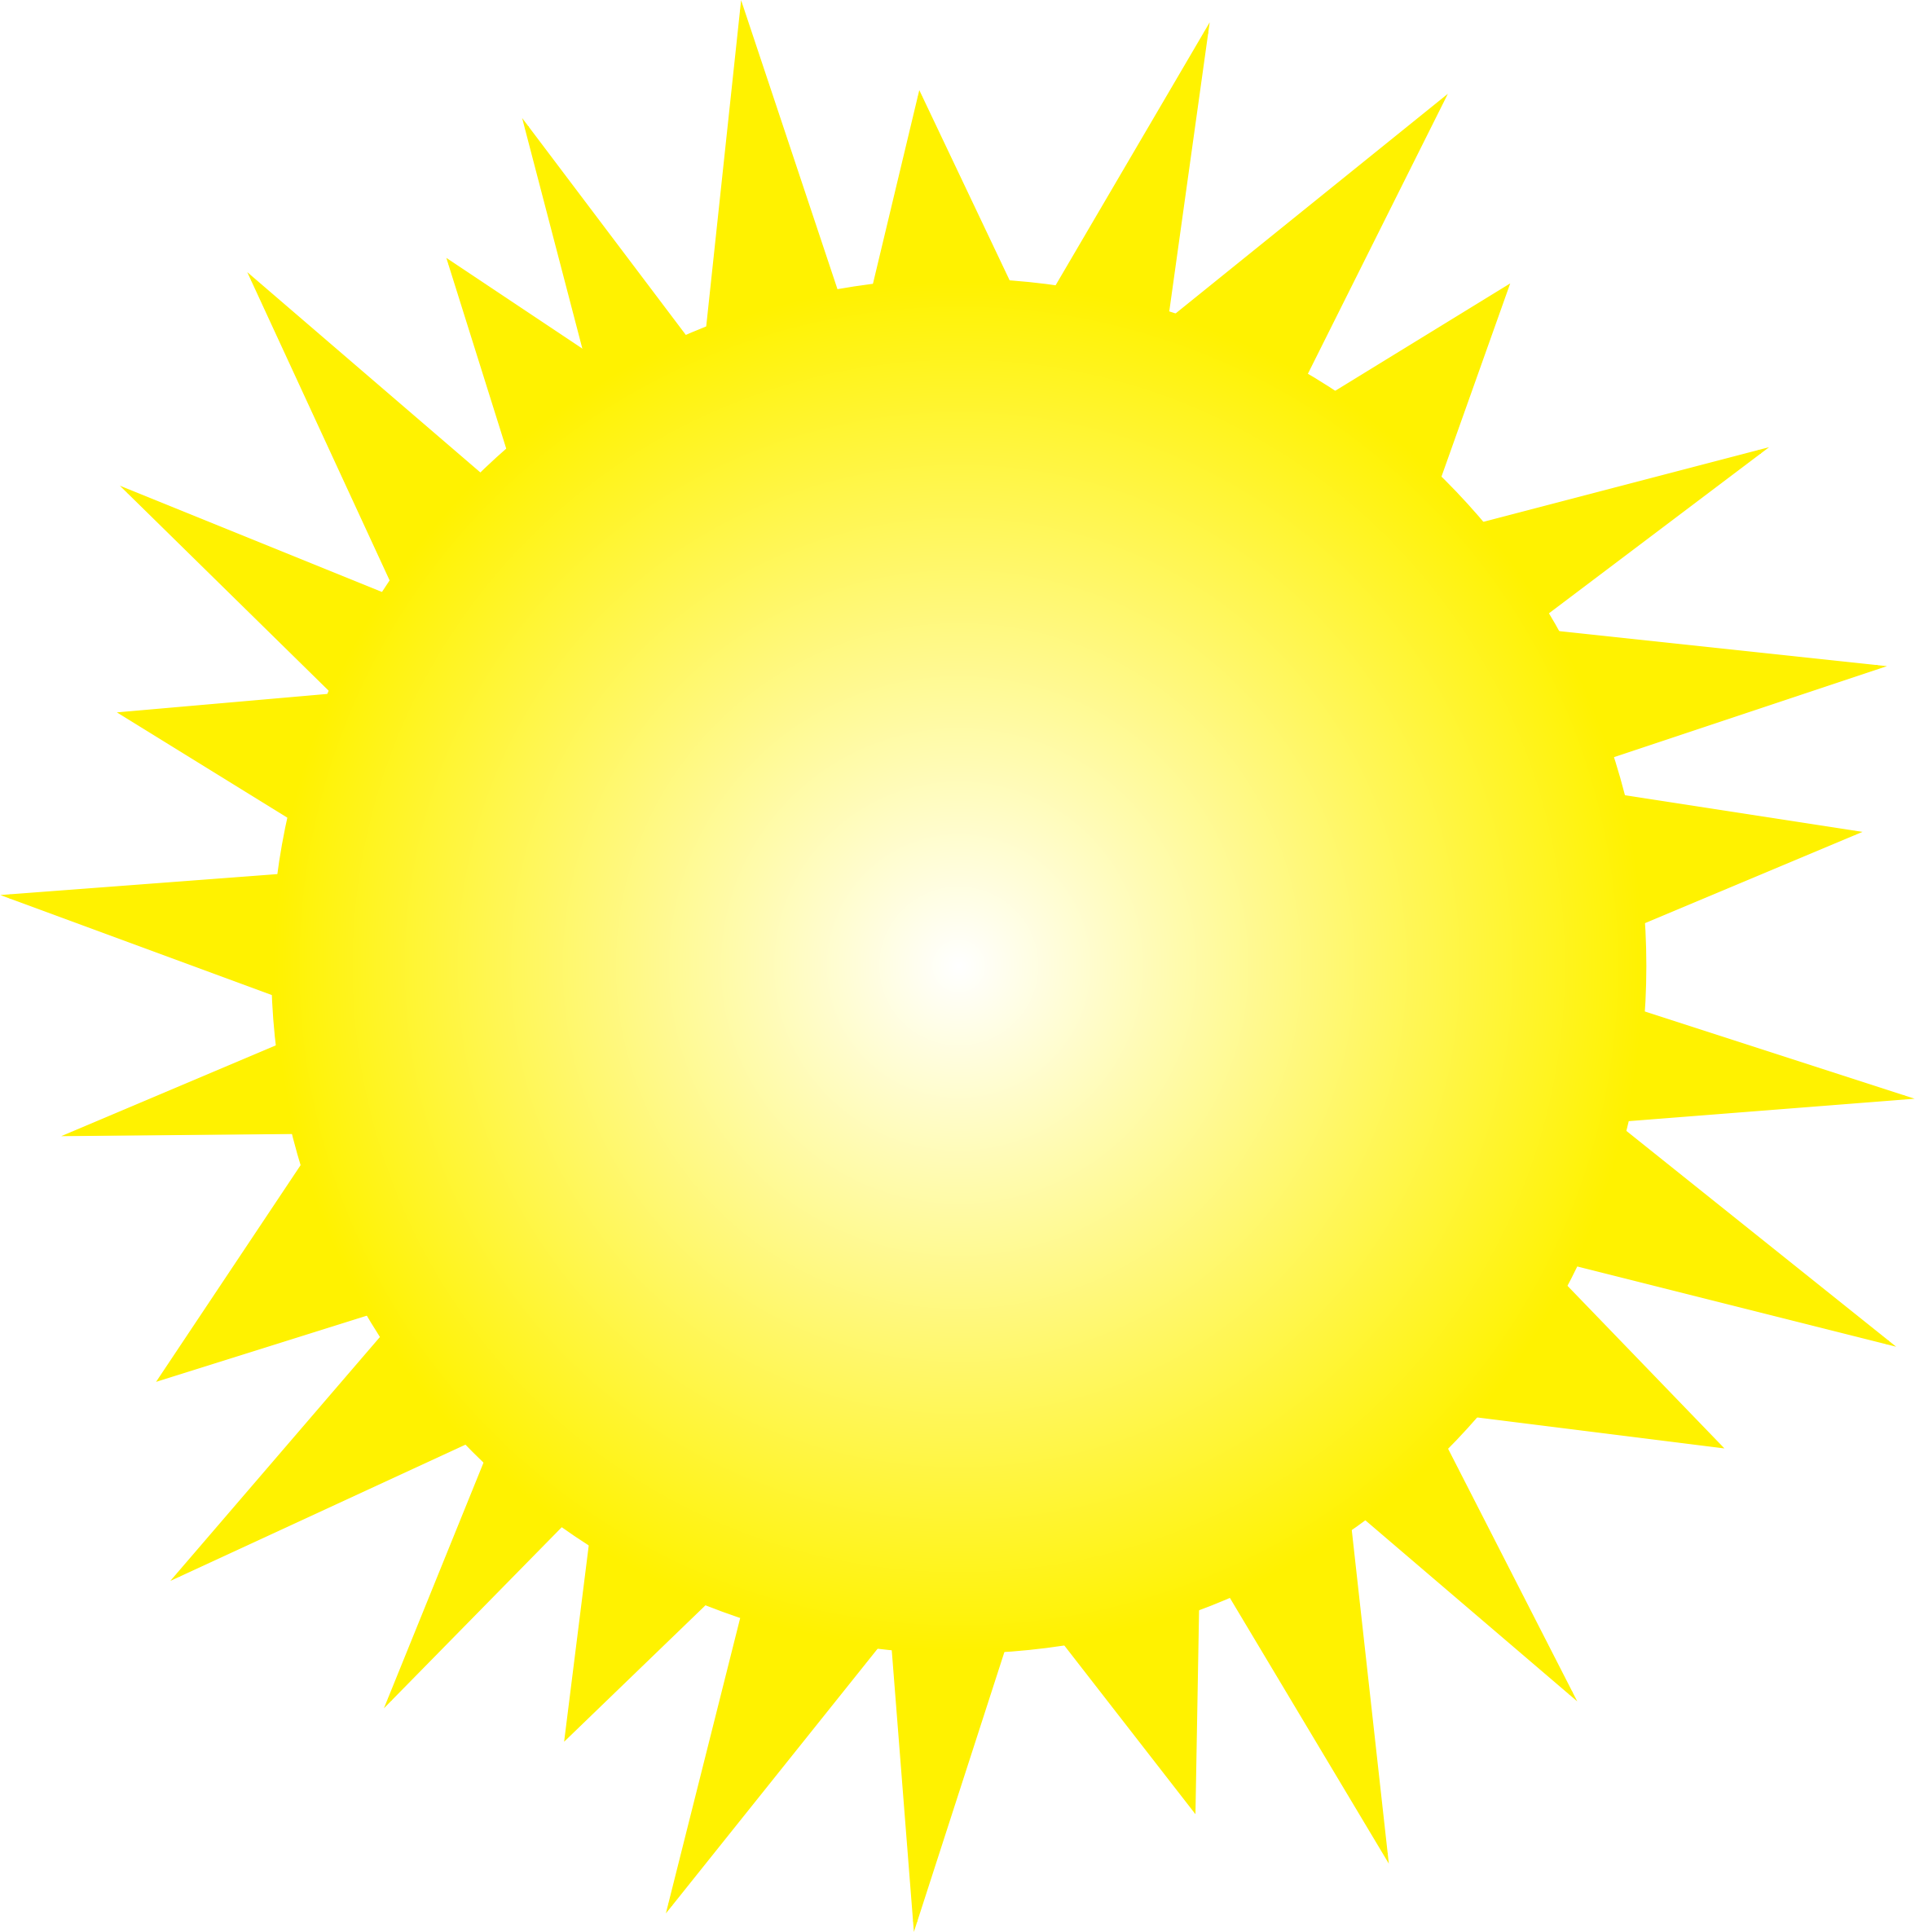 Sun PNG Transparent Background - 137194